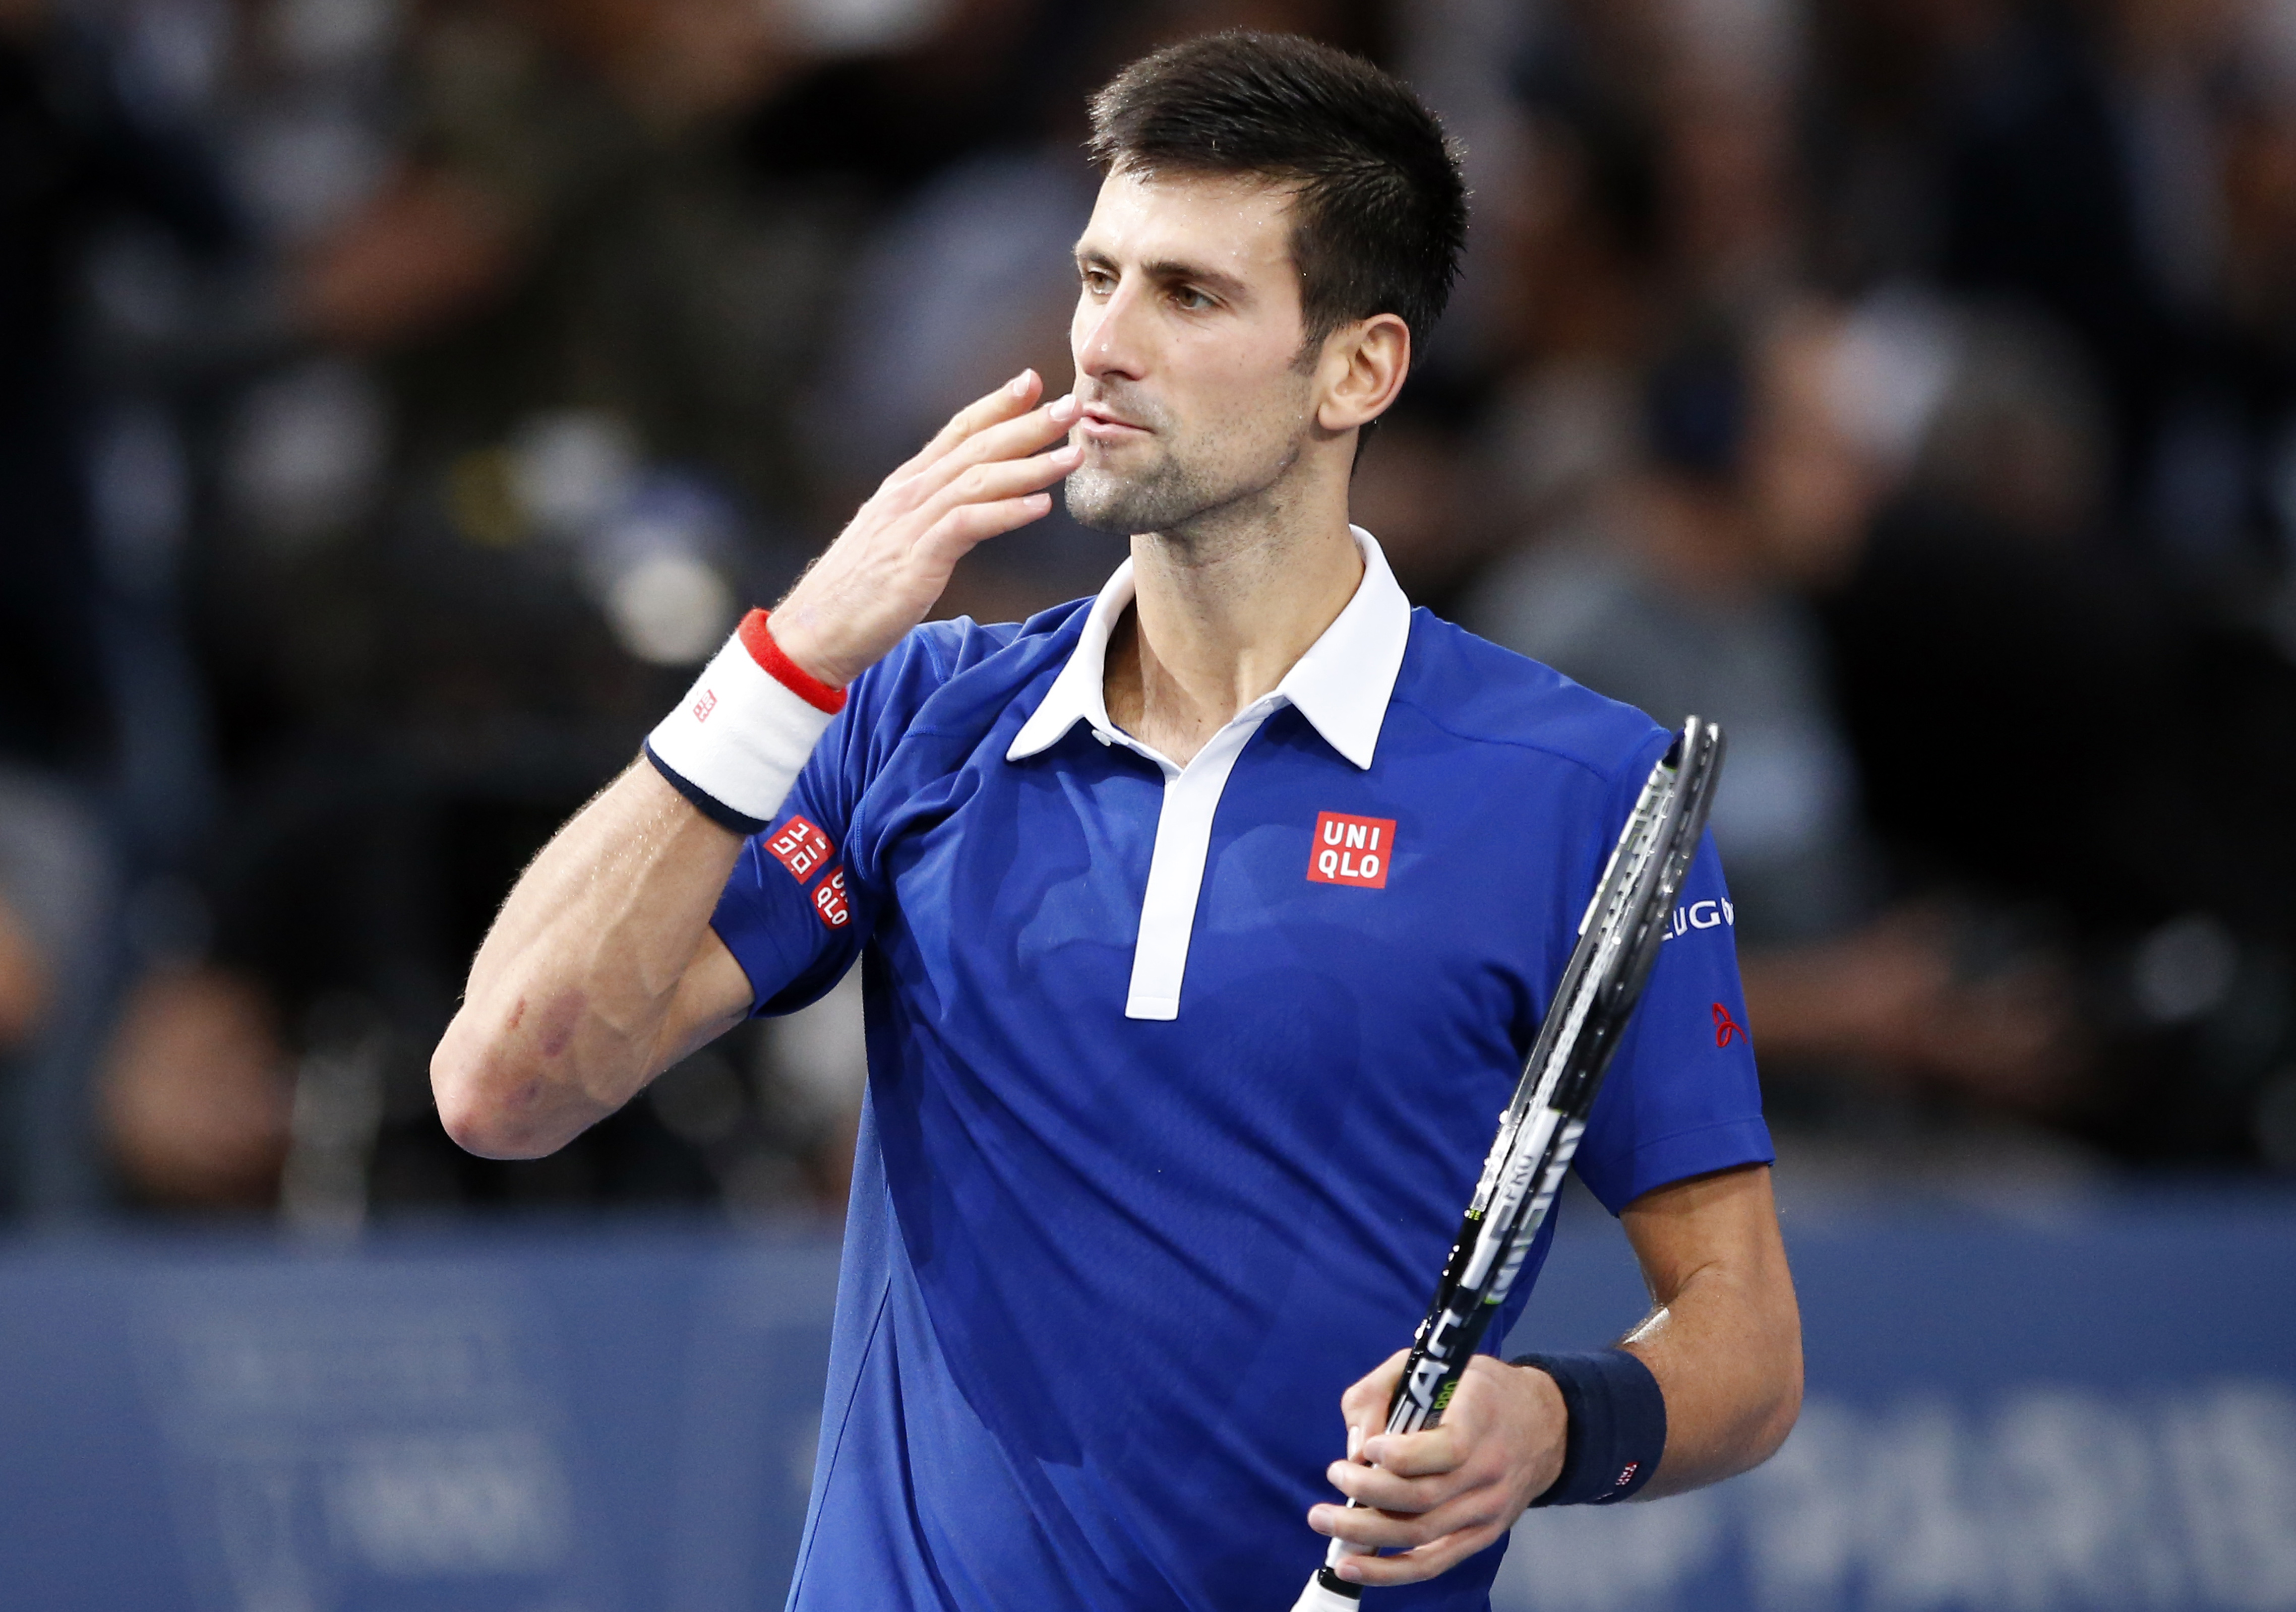 Serbia's Novak Djokovic blows a kiss on the match point to win Britain's Andy Murrray during their final match of the BNP Masters tennis tournament at the Paris Bercy Arena in Paris, France, Sunday, Nov. 8, 2015. Djokovic wins 6-2, 6-4. (AP Photo/Francois